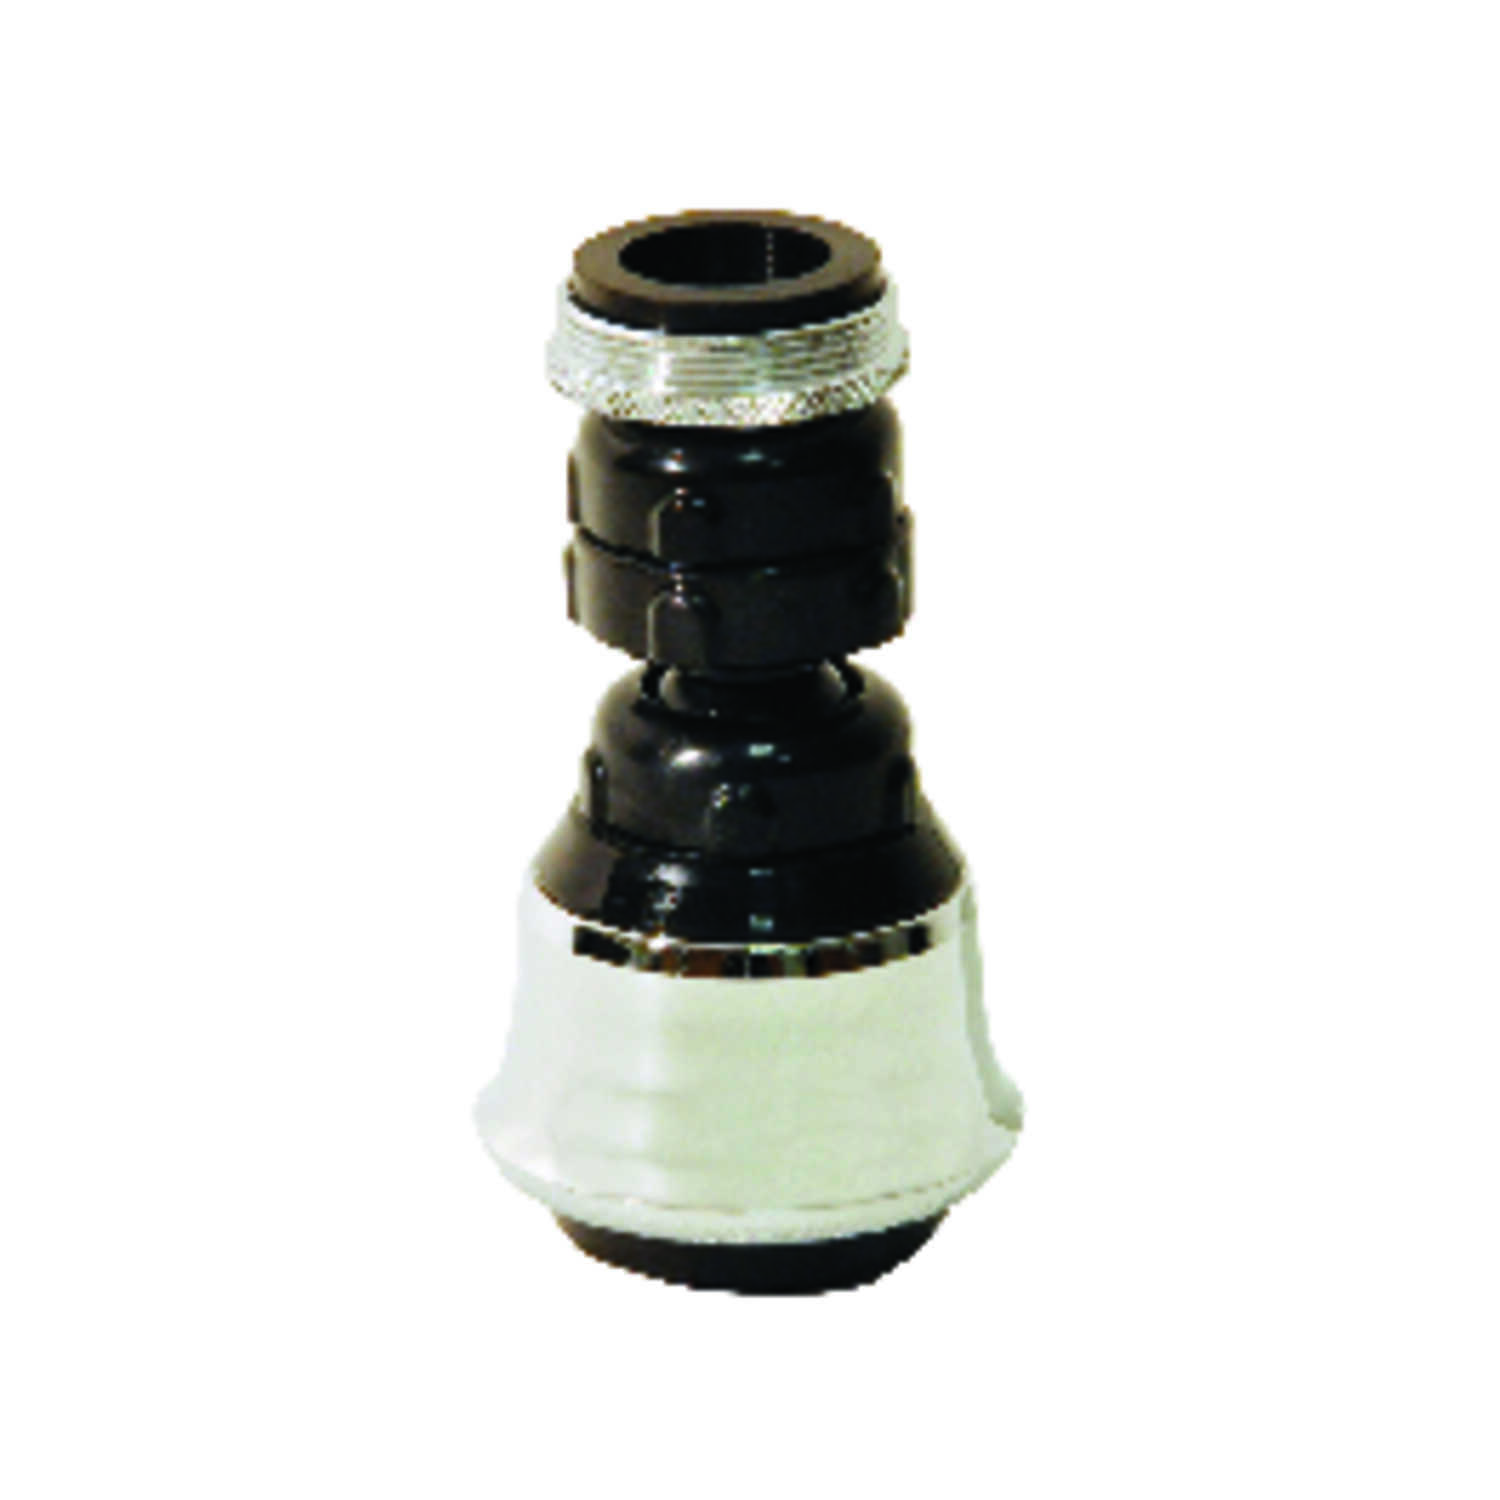 Danco  Swivel Sprayrator  15/16 in.  x 55/64 in.  Chrome